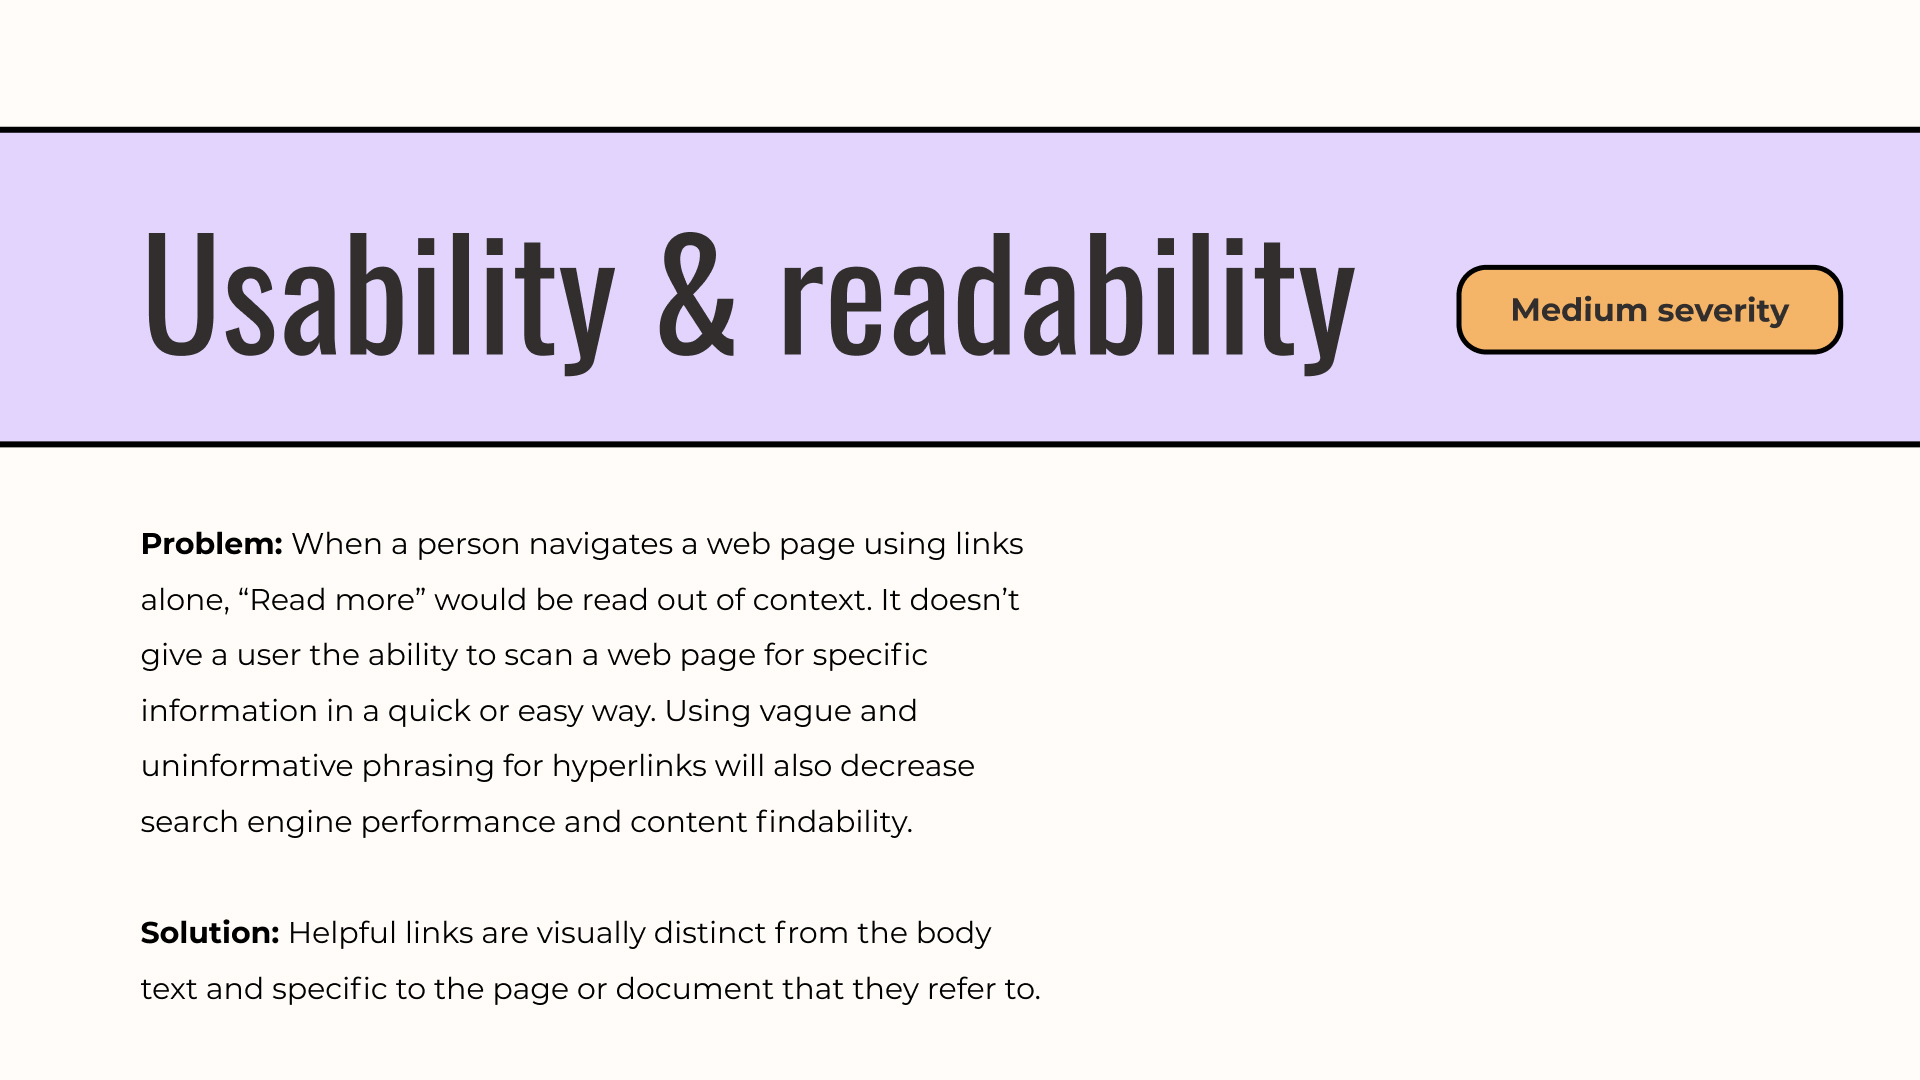 Usability & readability slide in a UX audit report